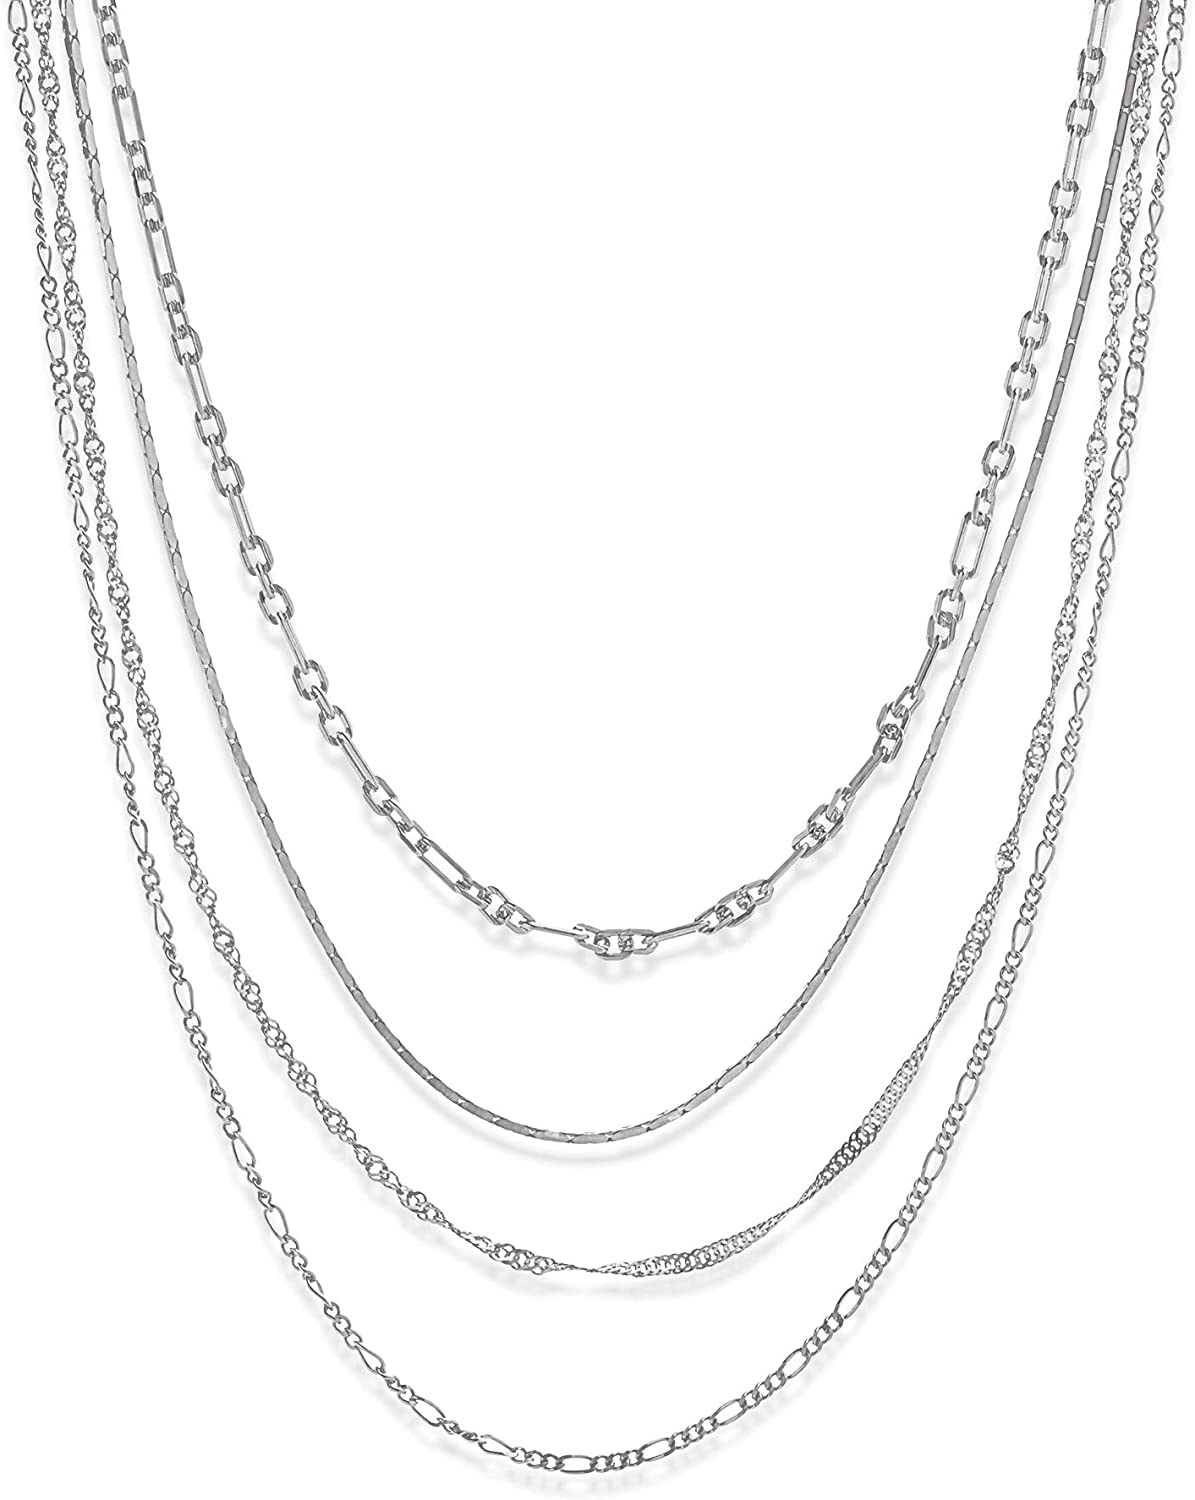 AUBREY LEE Multiple Chain Layered Choker Necklace for Women in Rhodium Plated Brass